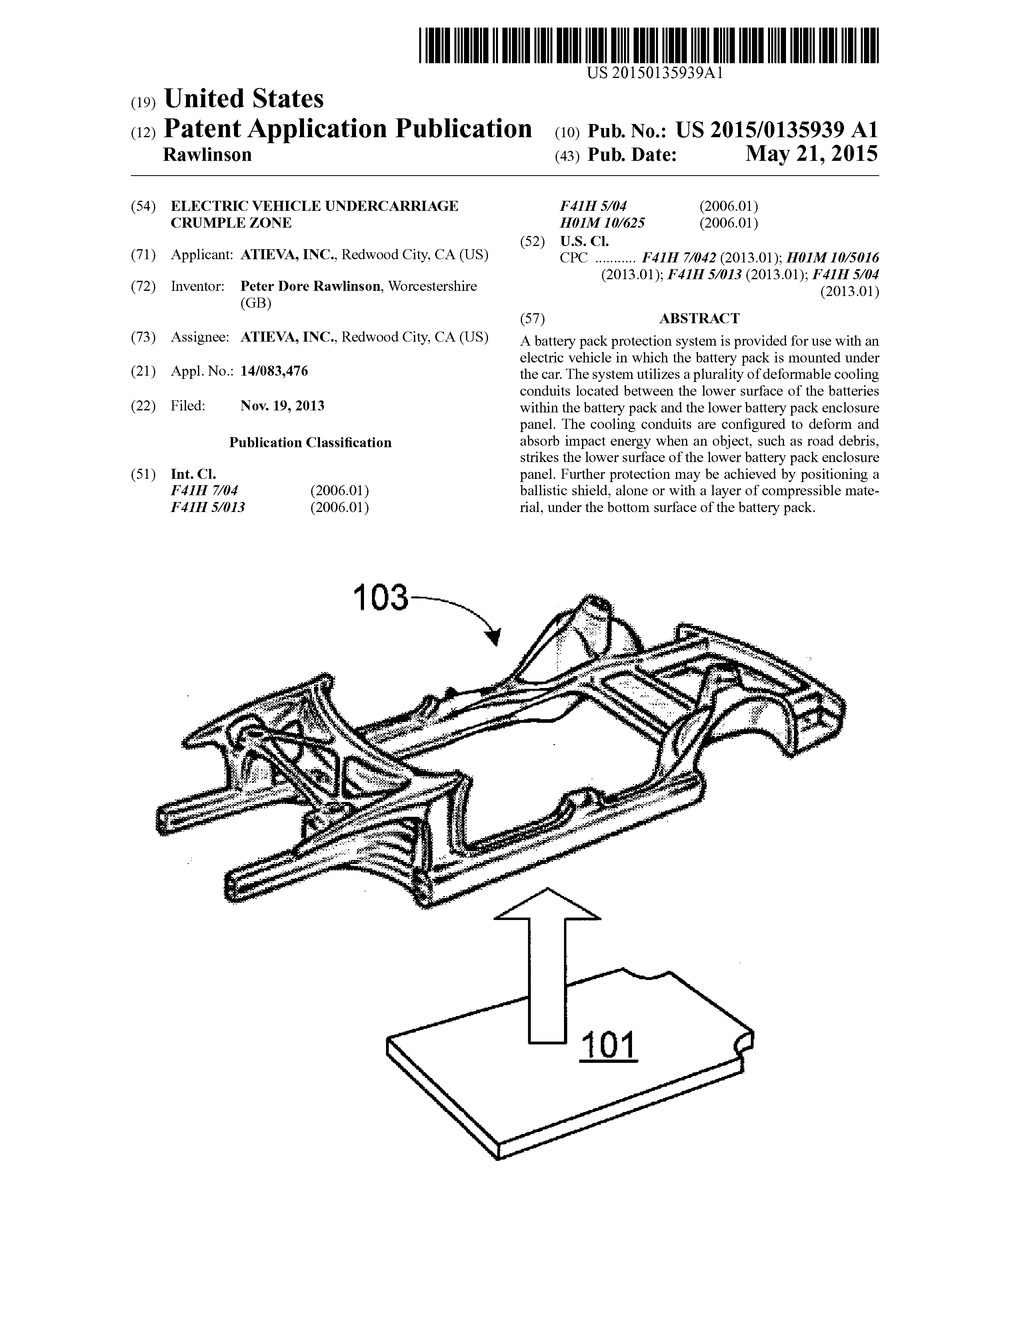 Electric Vehicle Undercarriage Crumple Zone - diagram, schematic, and image  01